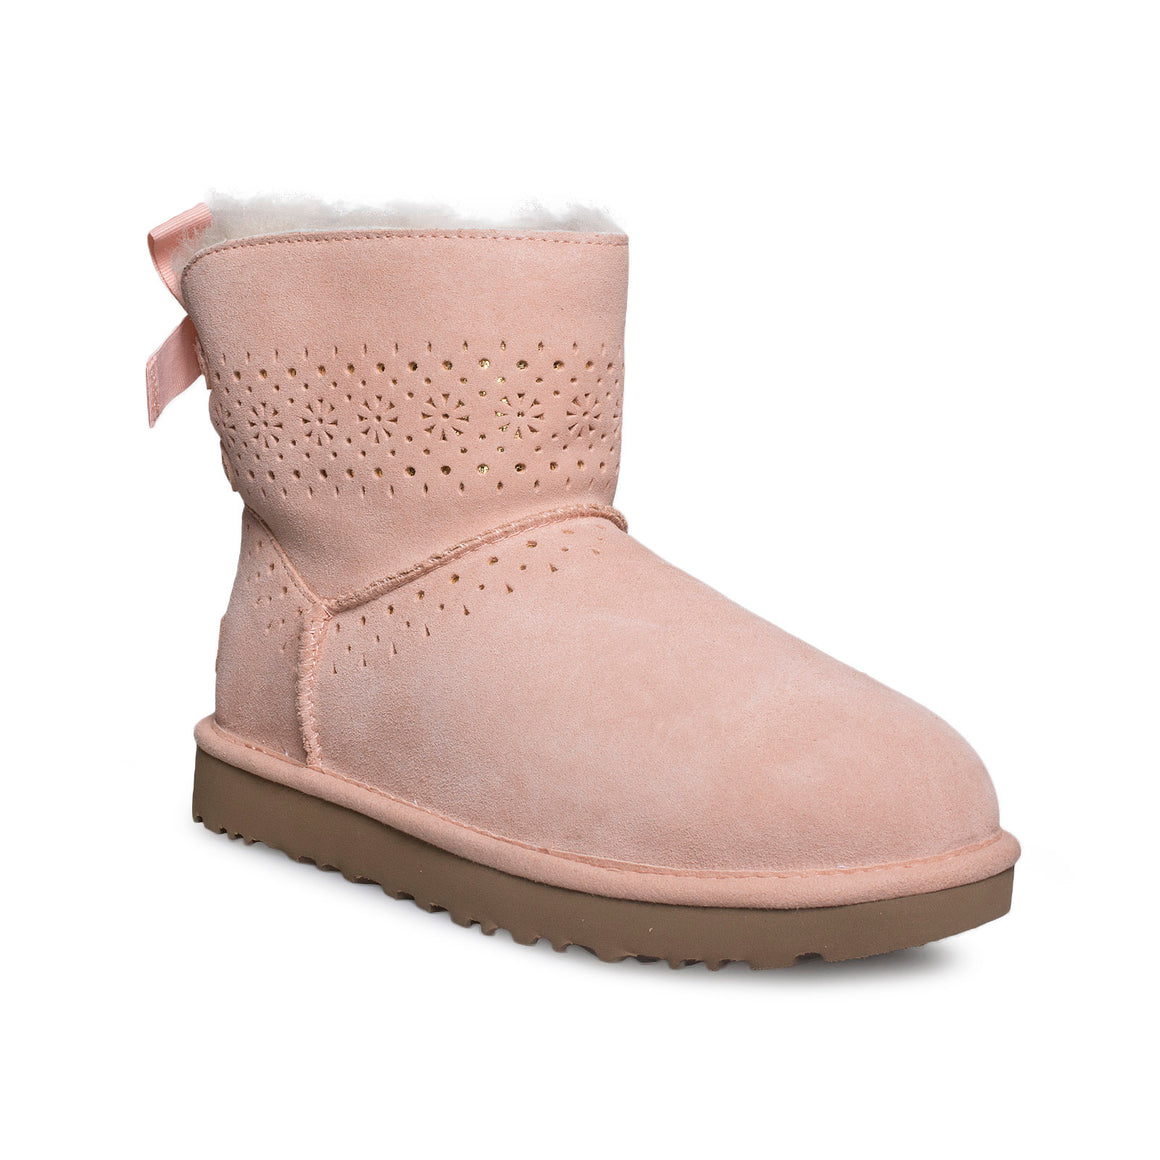 UGG Dae Sunshine Perf Tropical Peach Boots - Women's